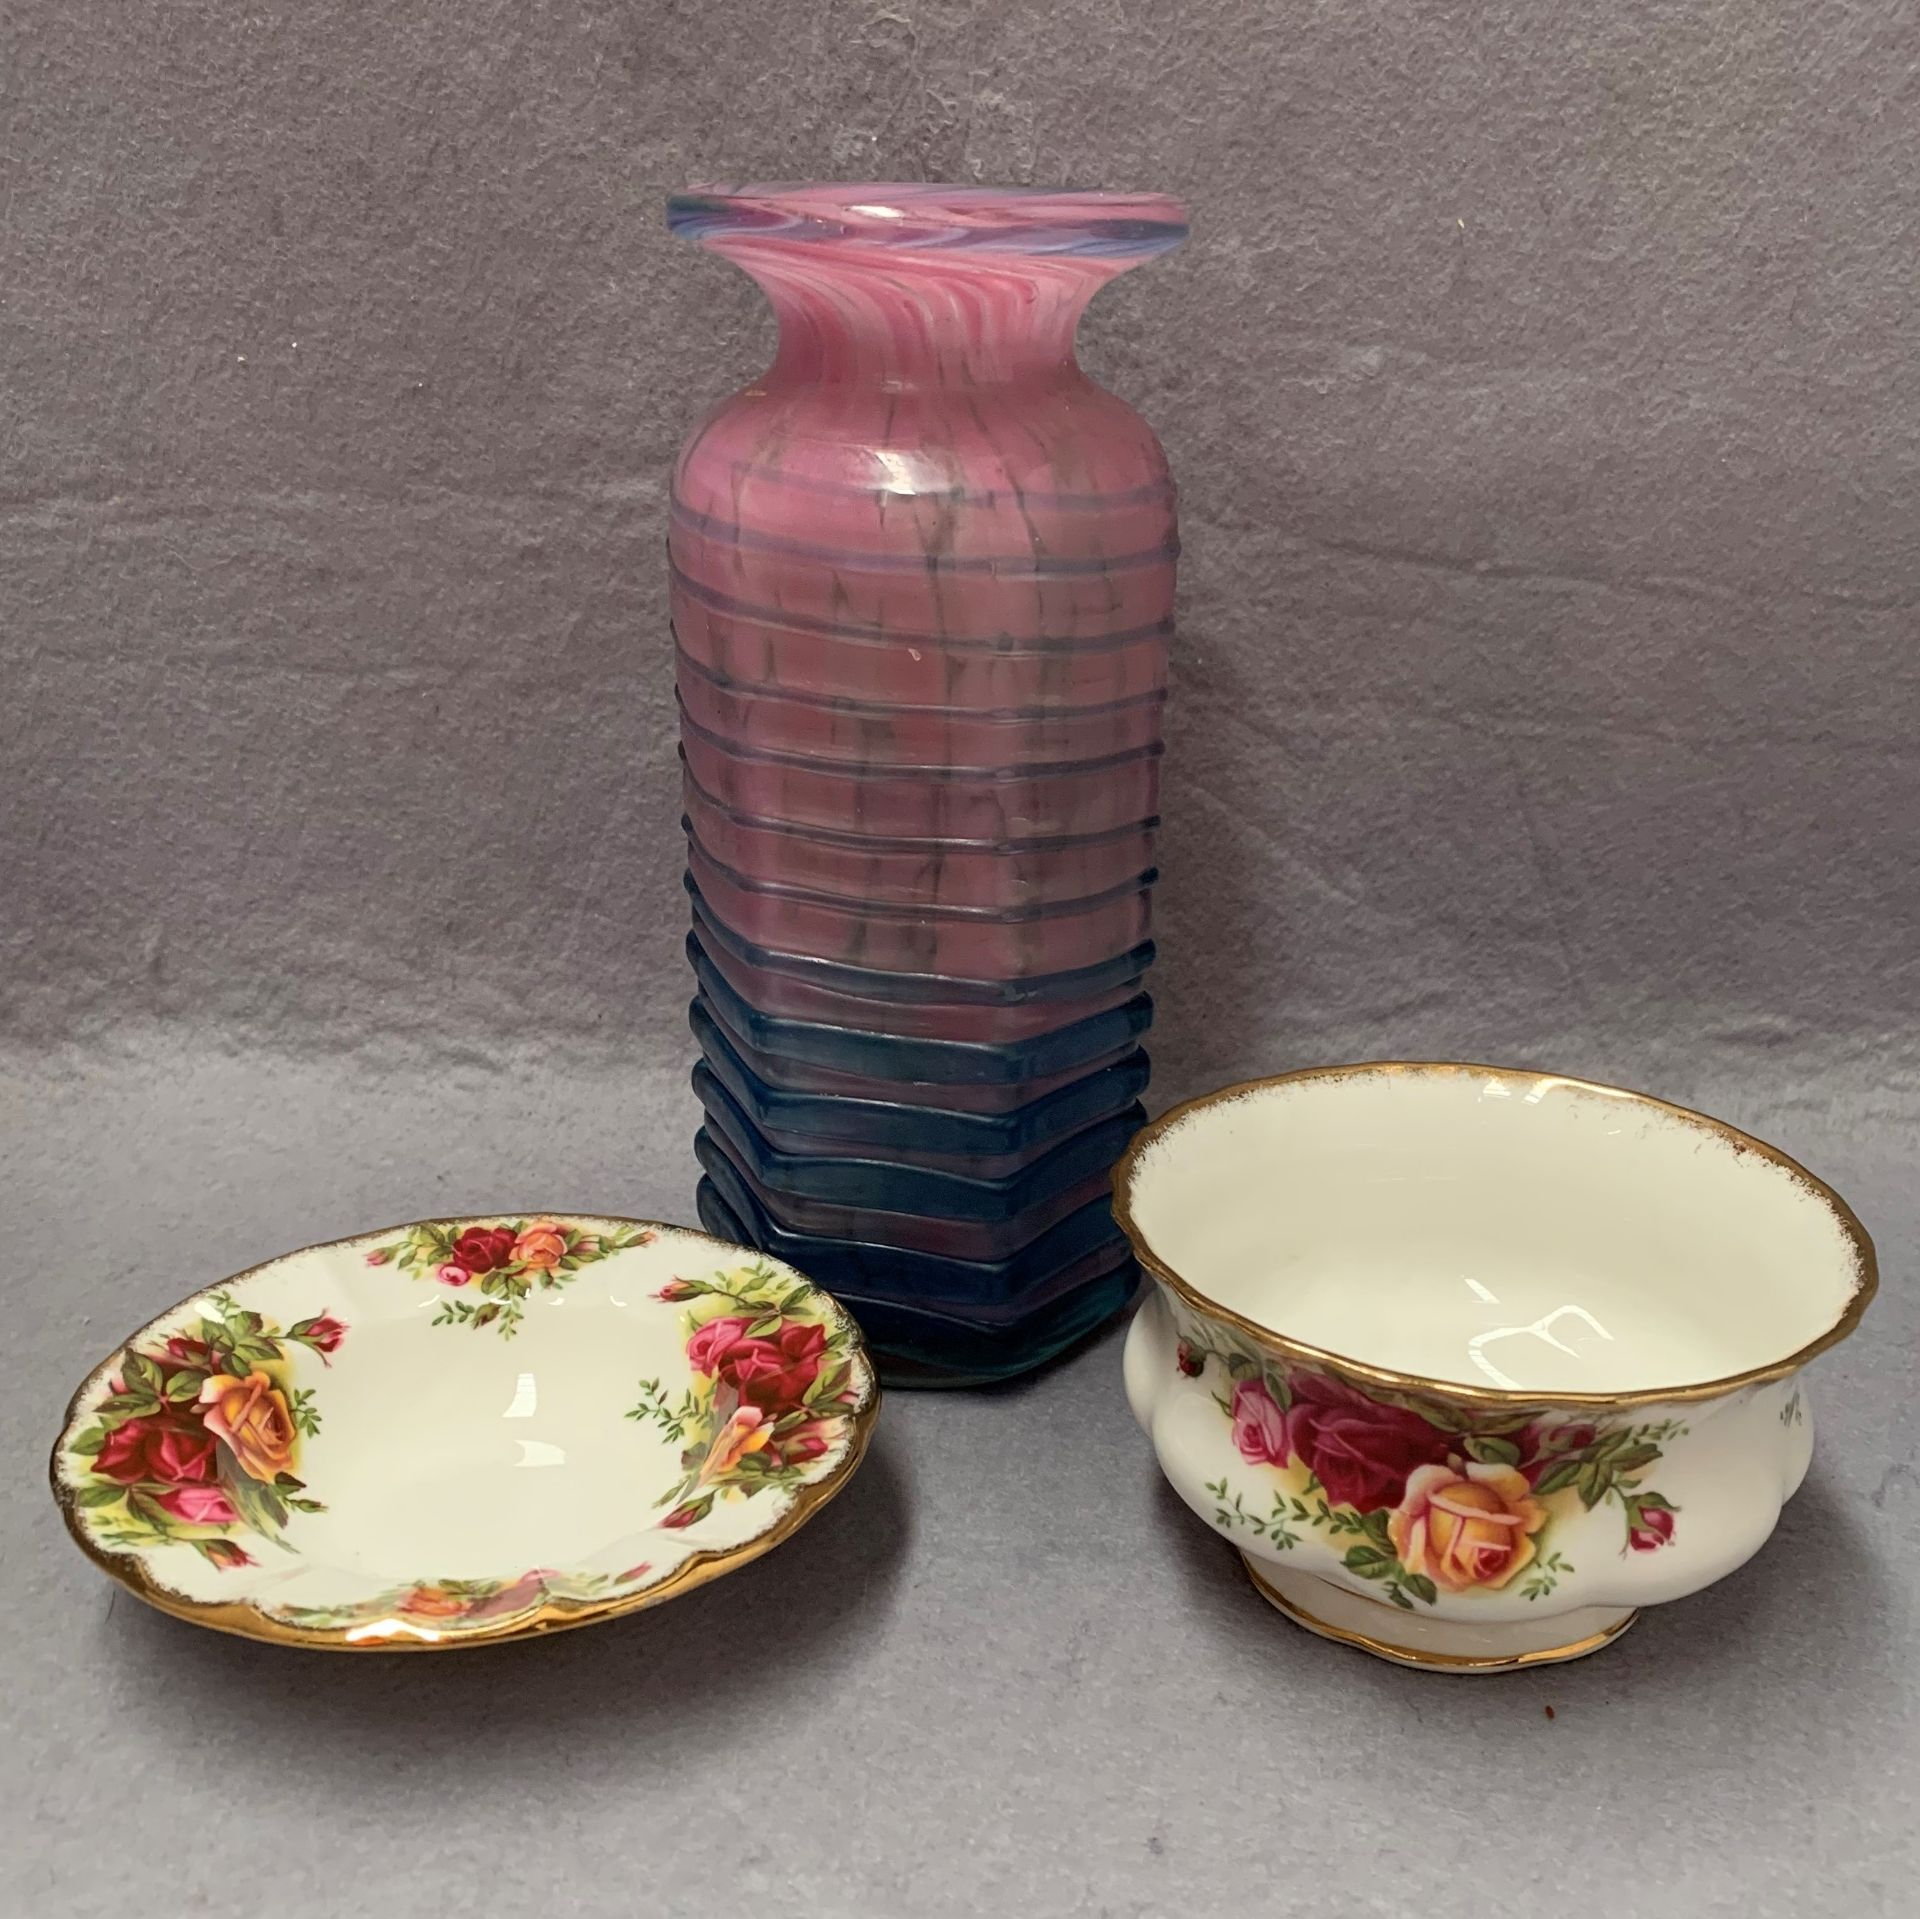 Lot 43 - Mdina vase, ribbed, graduating from pink to blue,